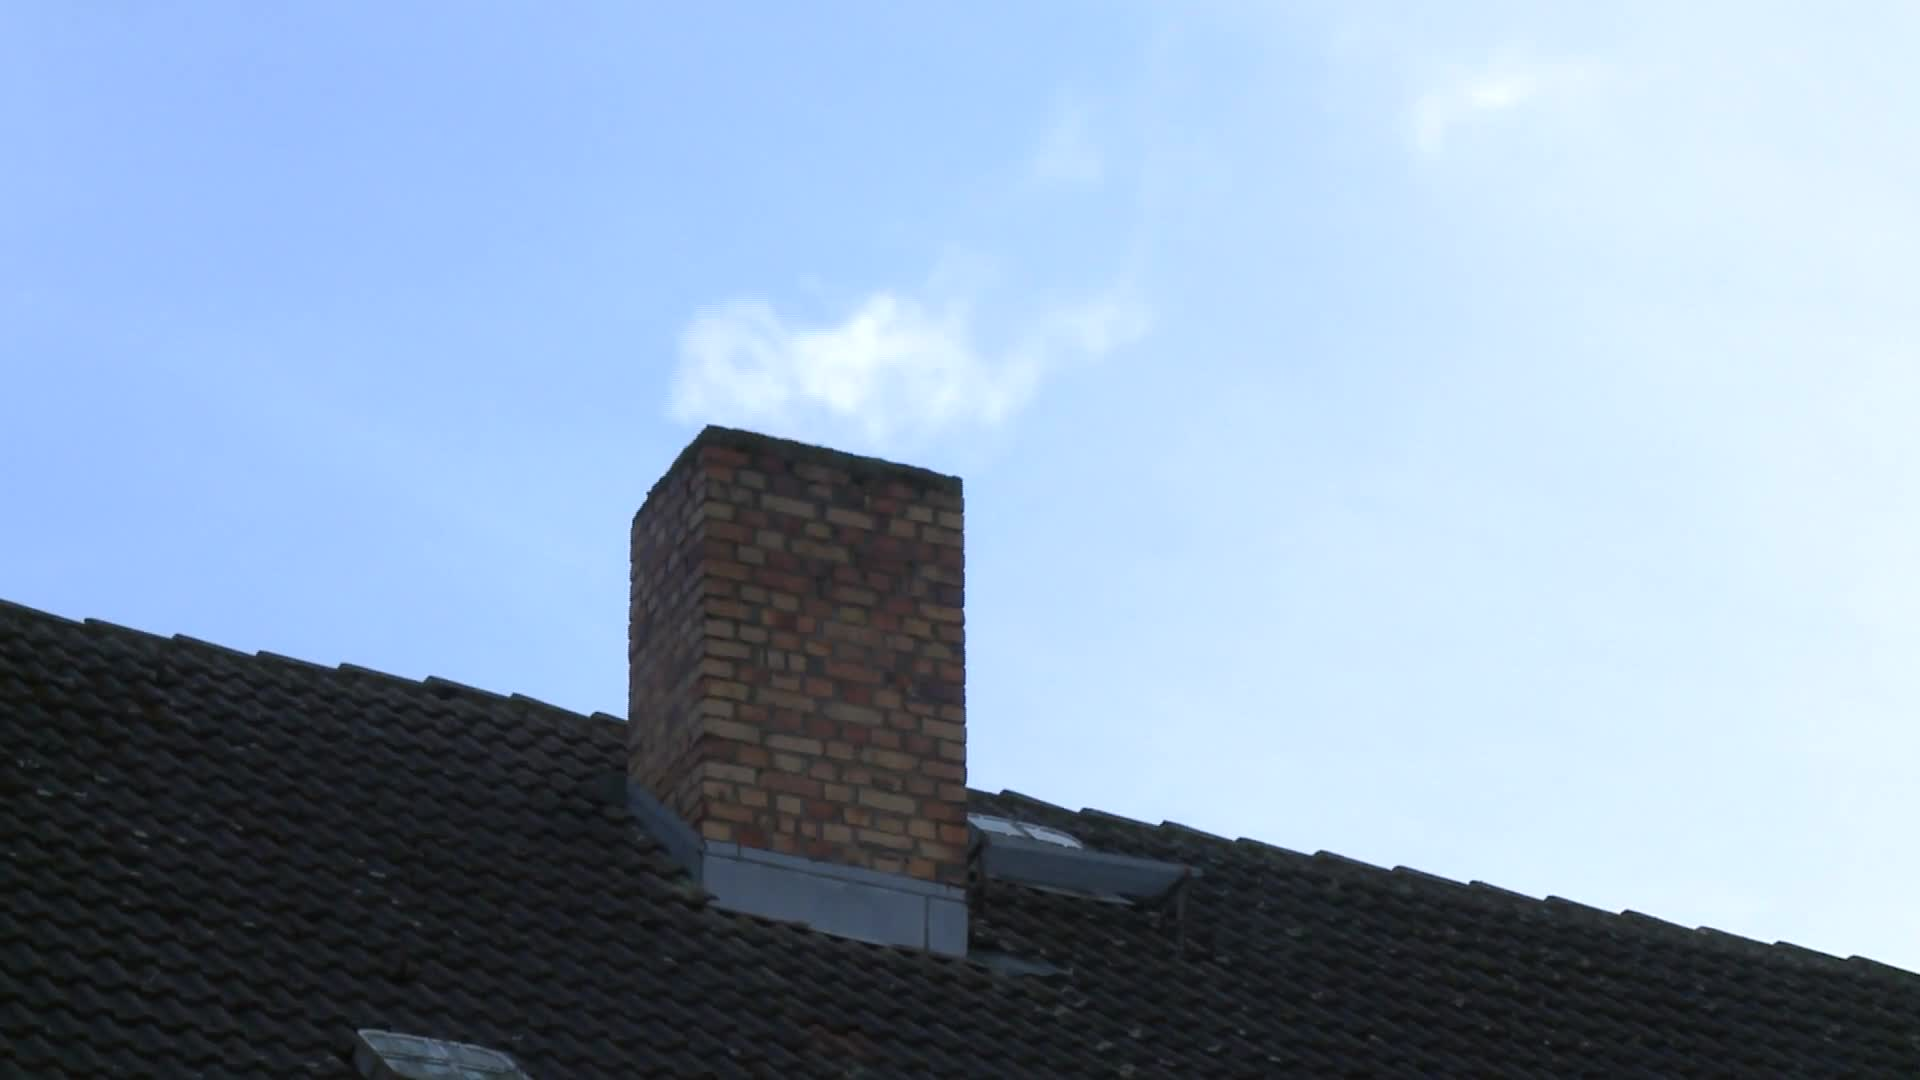 Video of smoke coming out the chimney